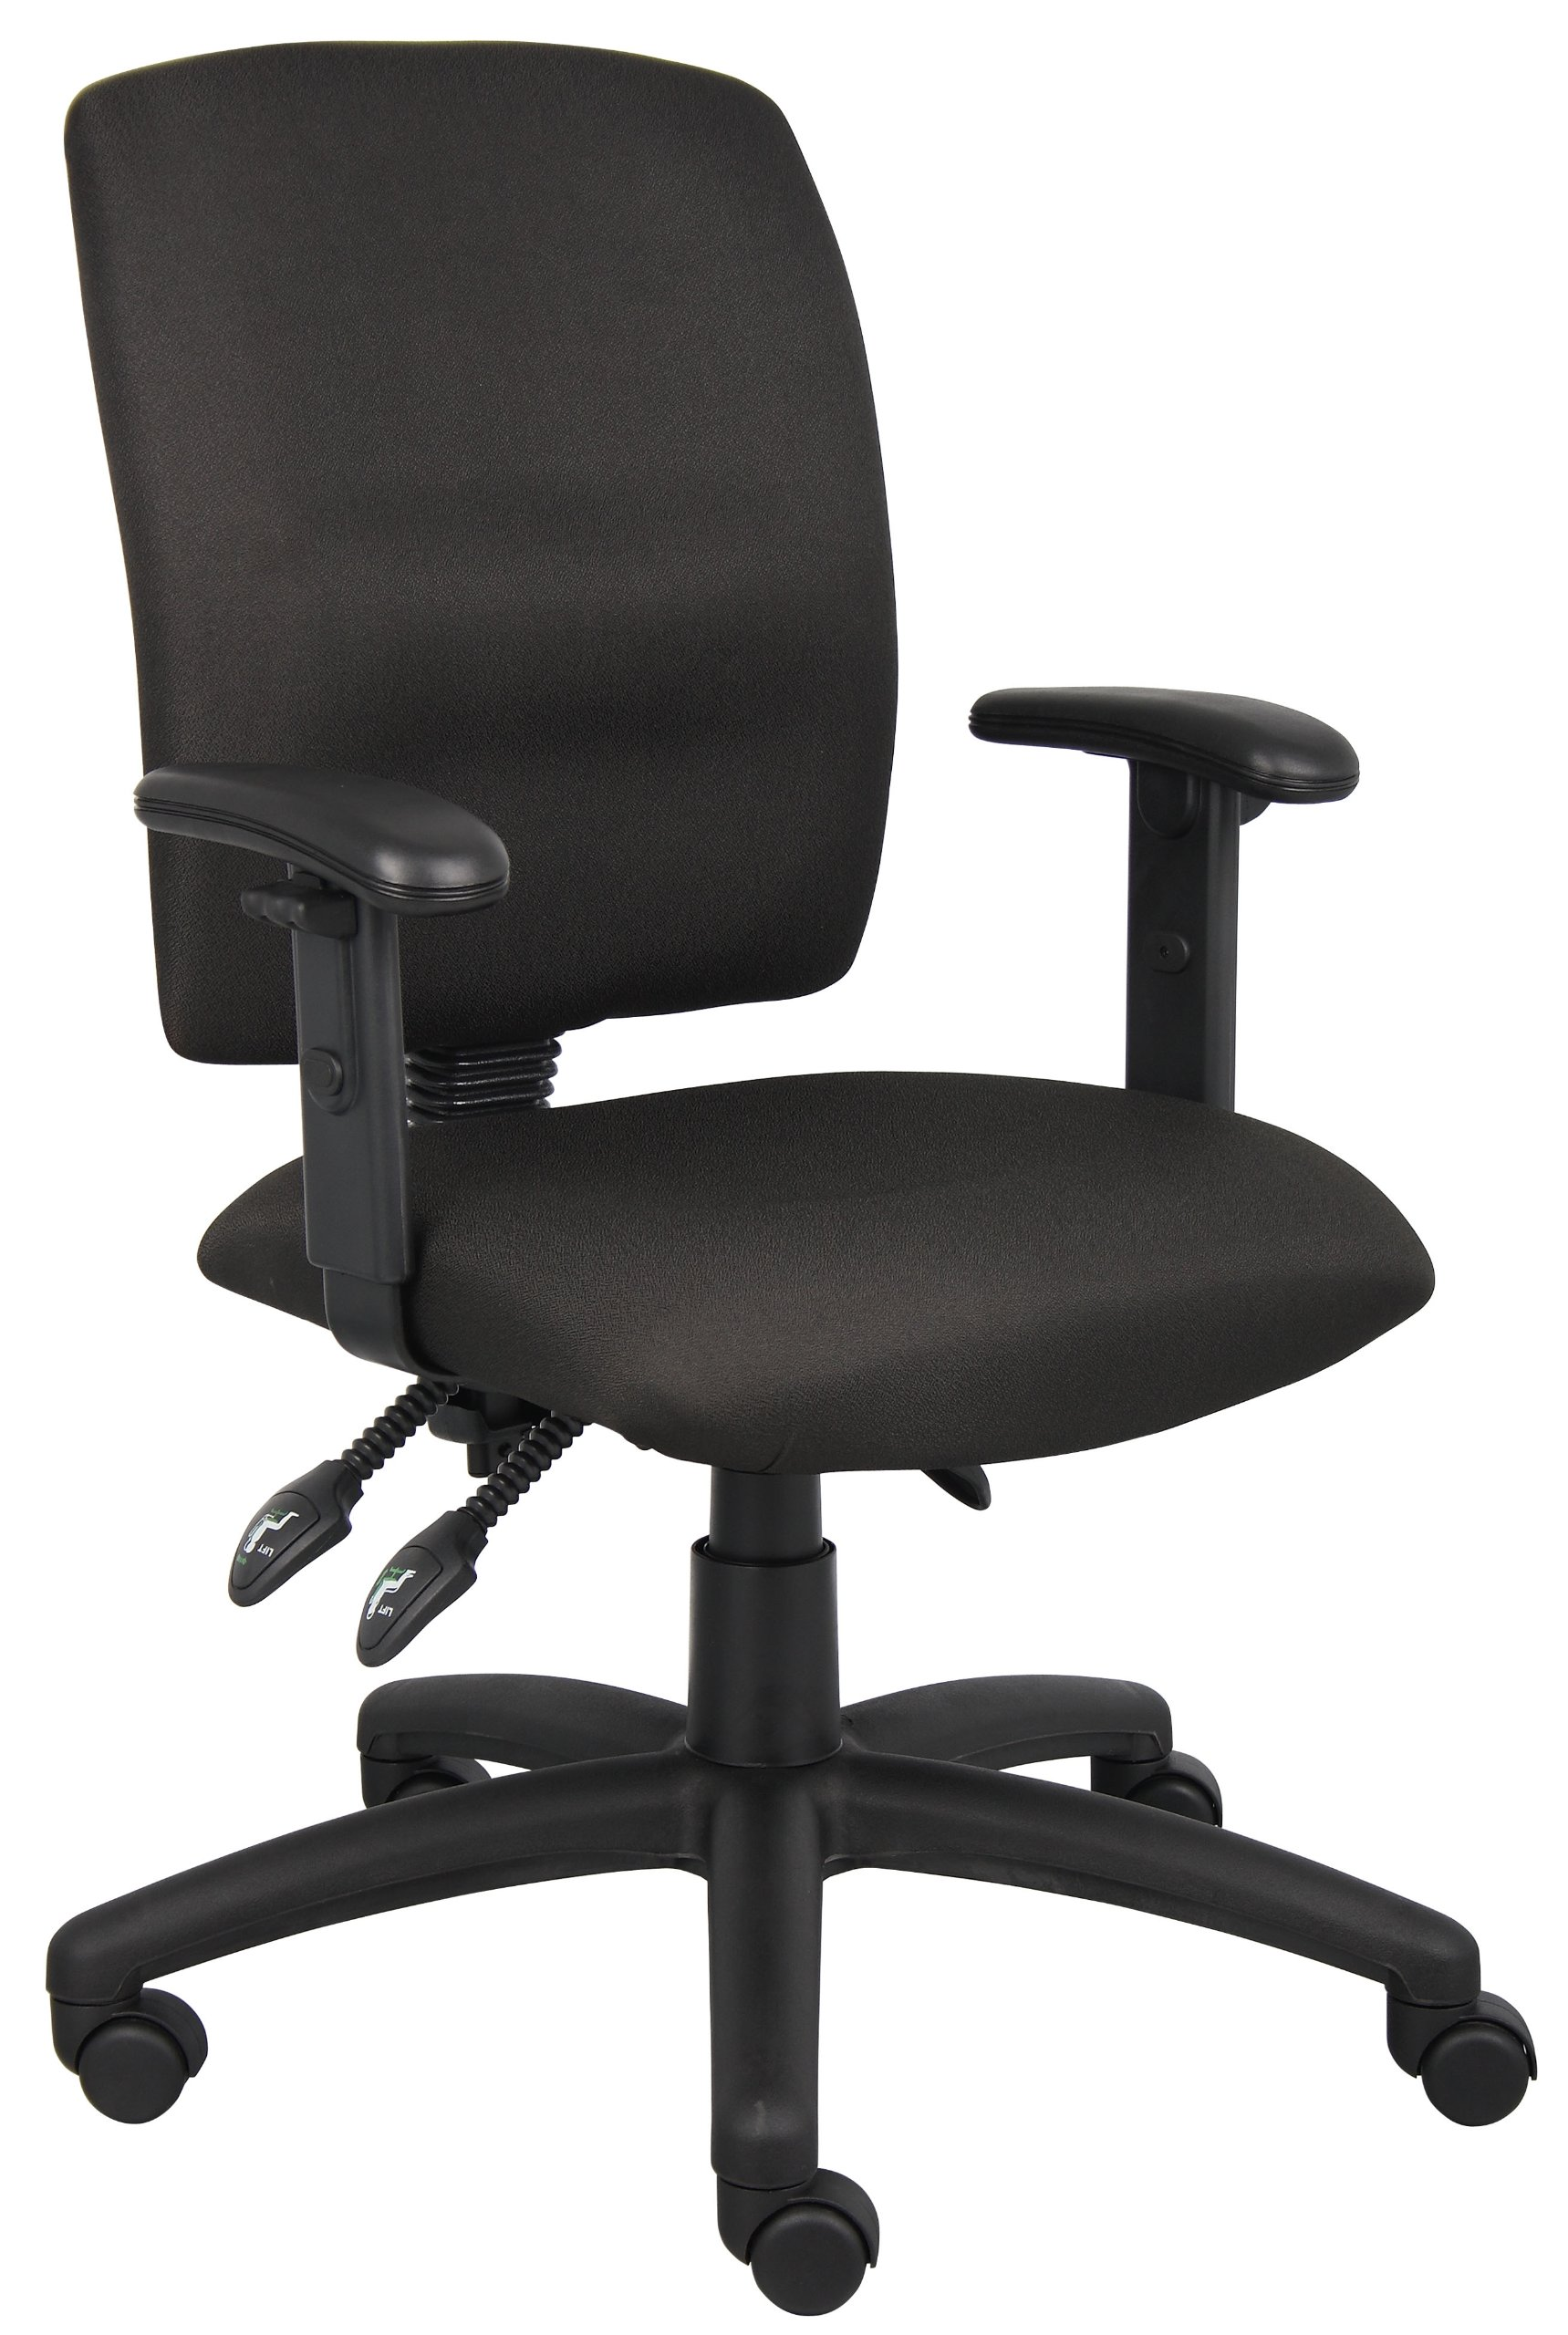 Boss Office Products B3036-BK Multi-Function Fabric Task Chair with Adjustable Arms in Black